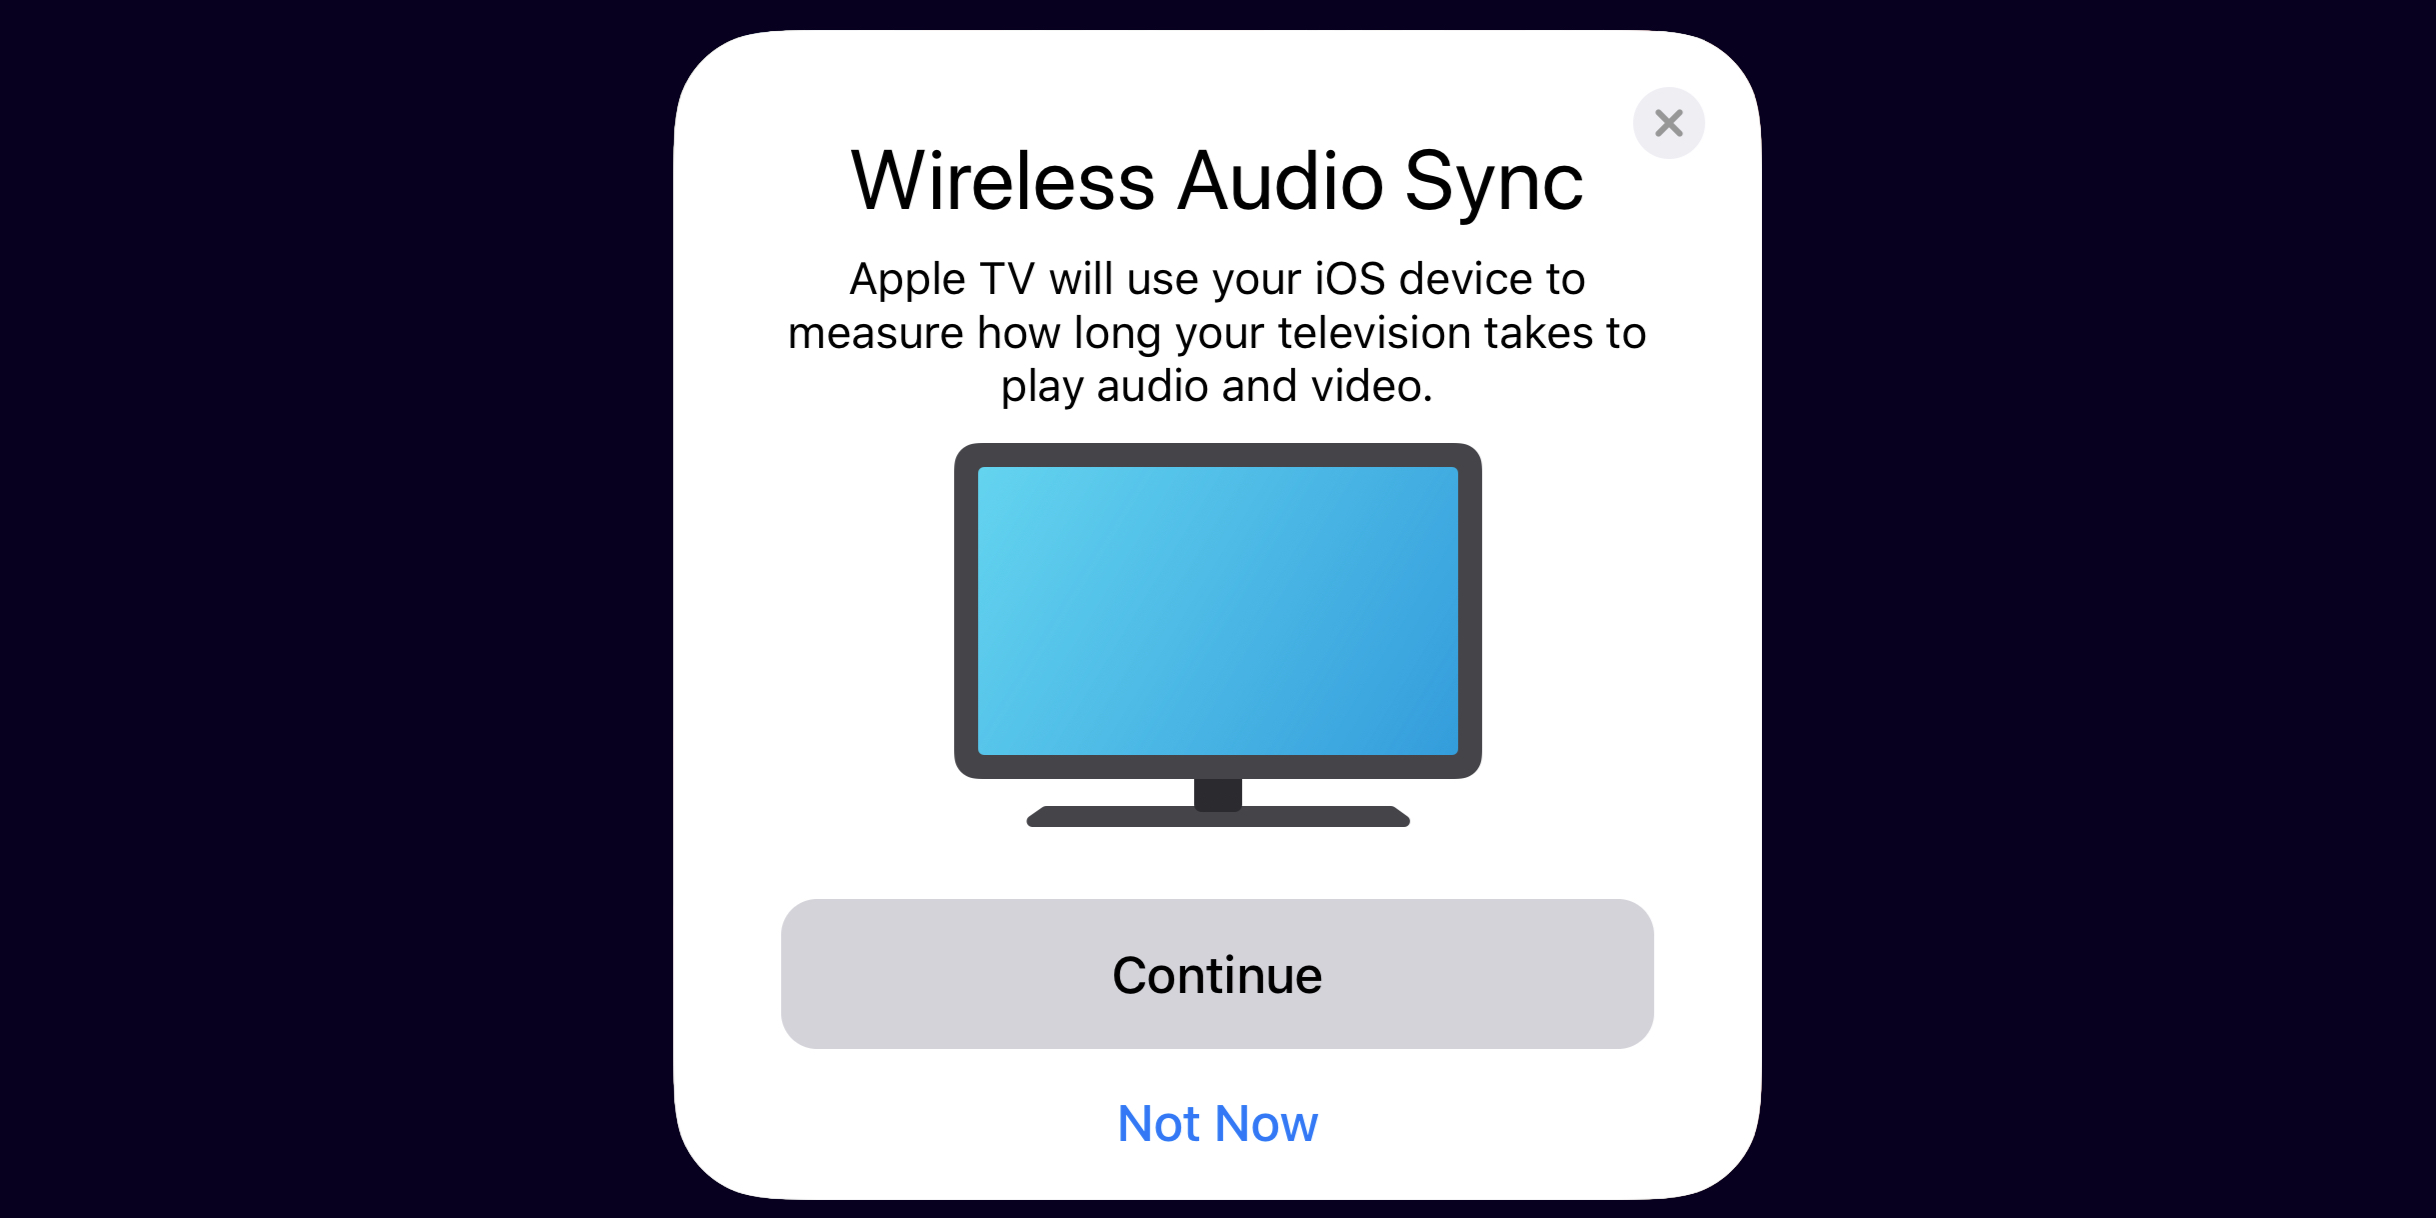 Ios 13 Uses Your Iphone Microphone To Fix Apple Tv Audio Sync Issues 9to5mac